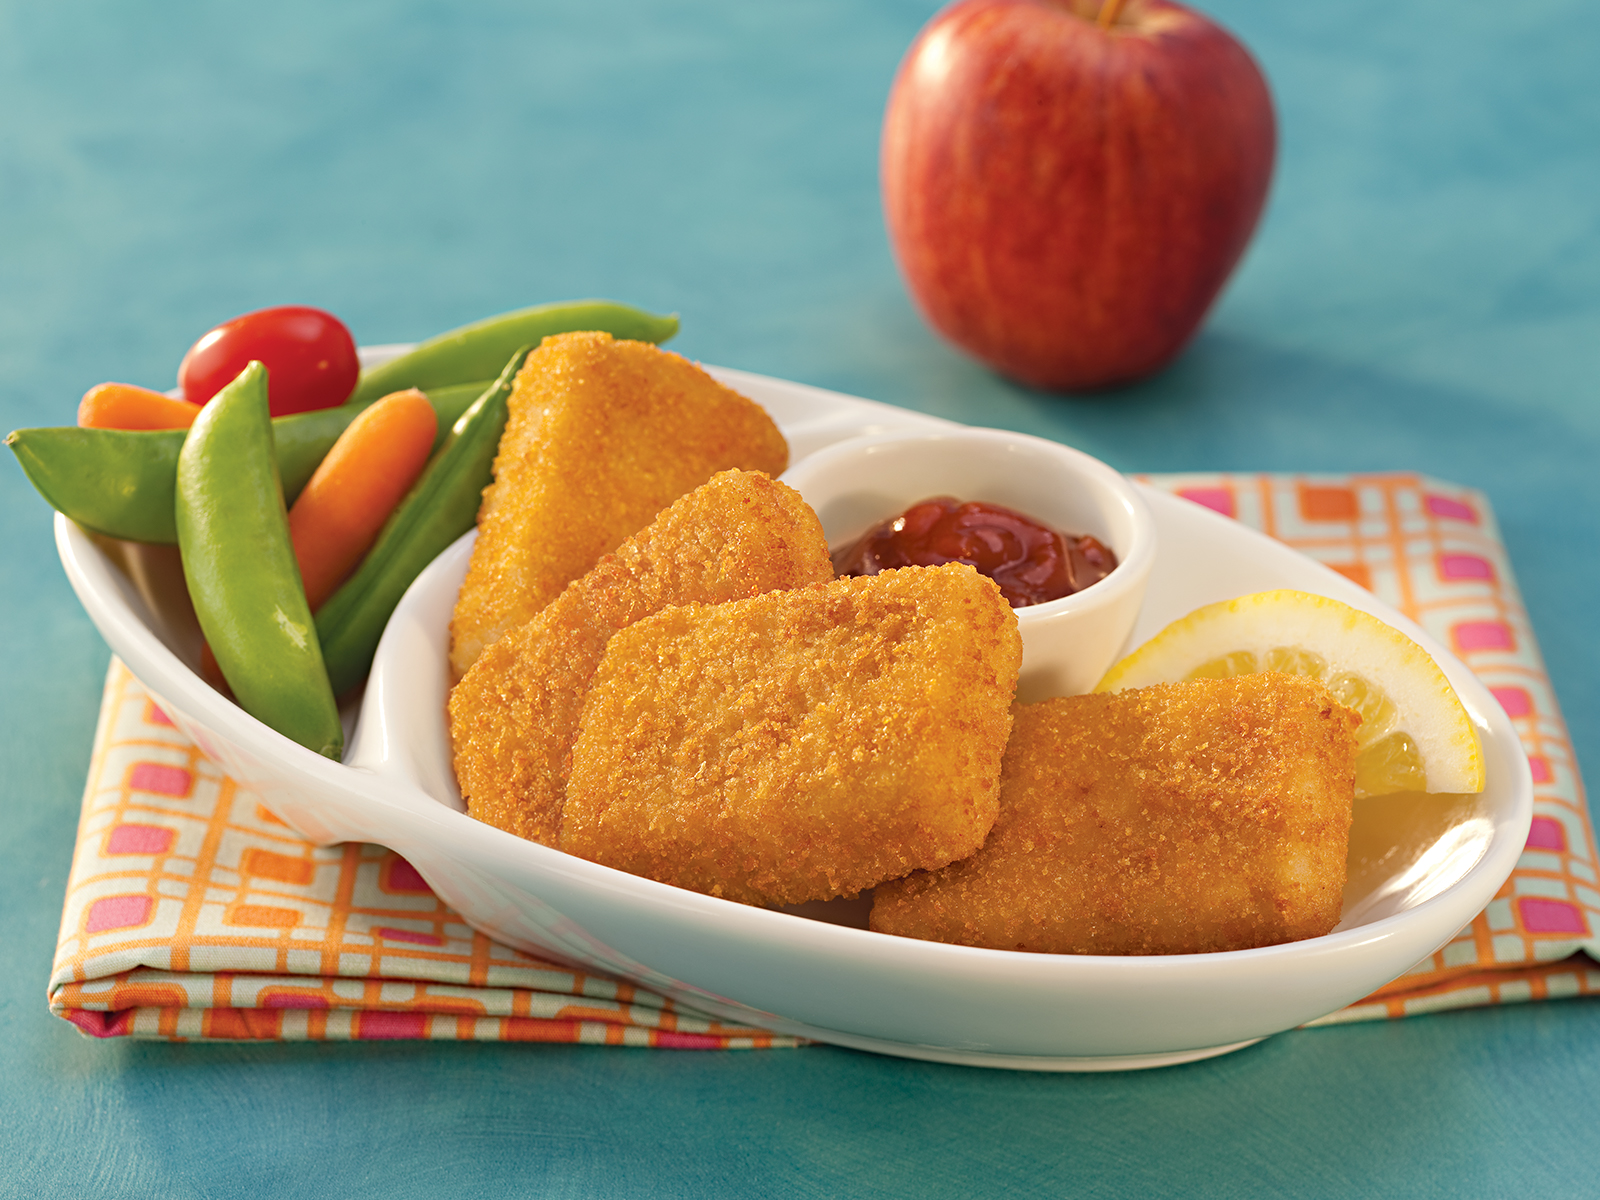 Breaded Wild Alaska Pollock Fish Nuggets 1 oz WG, Oven Ready 418305